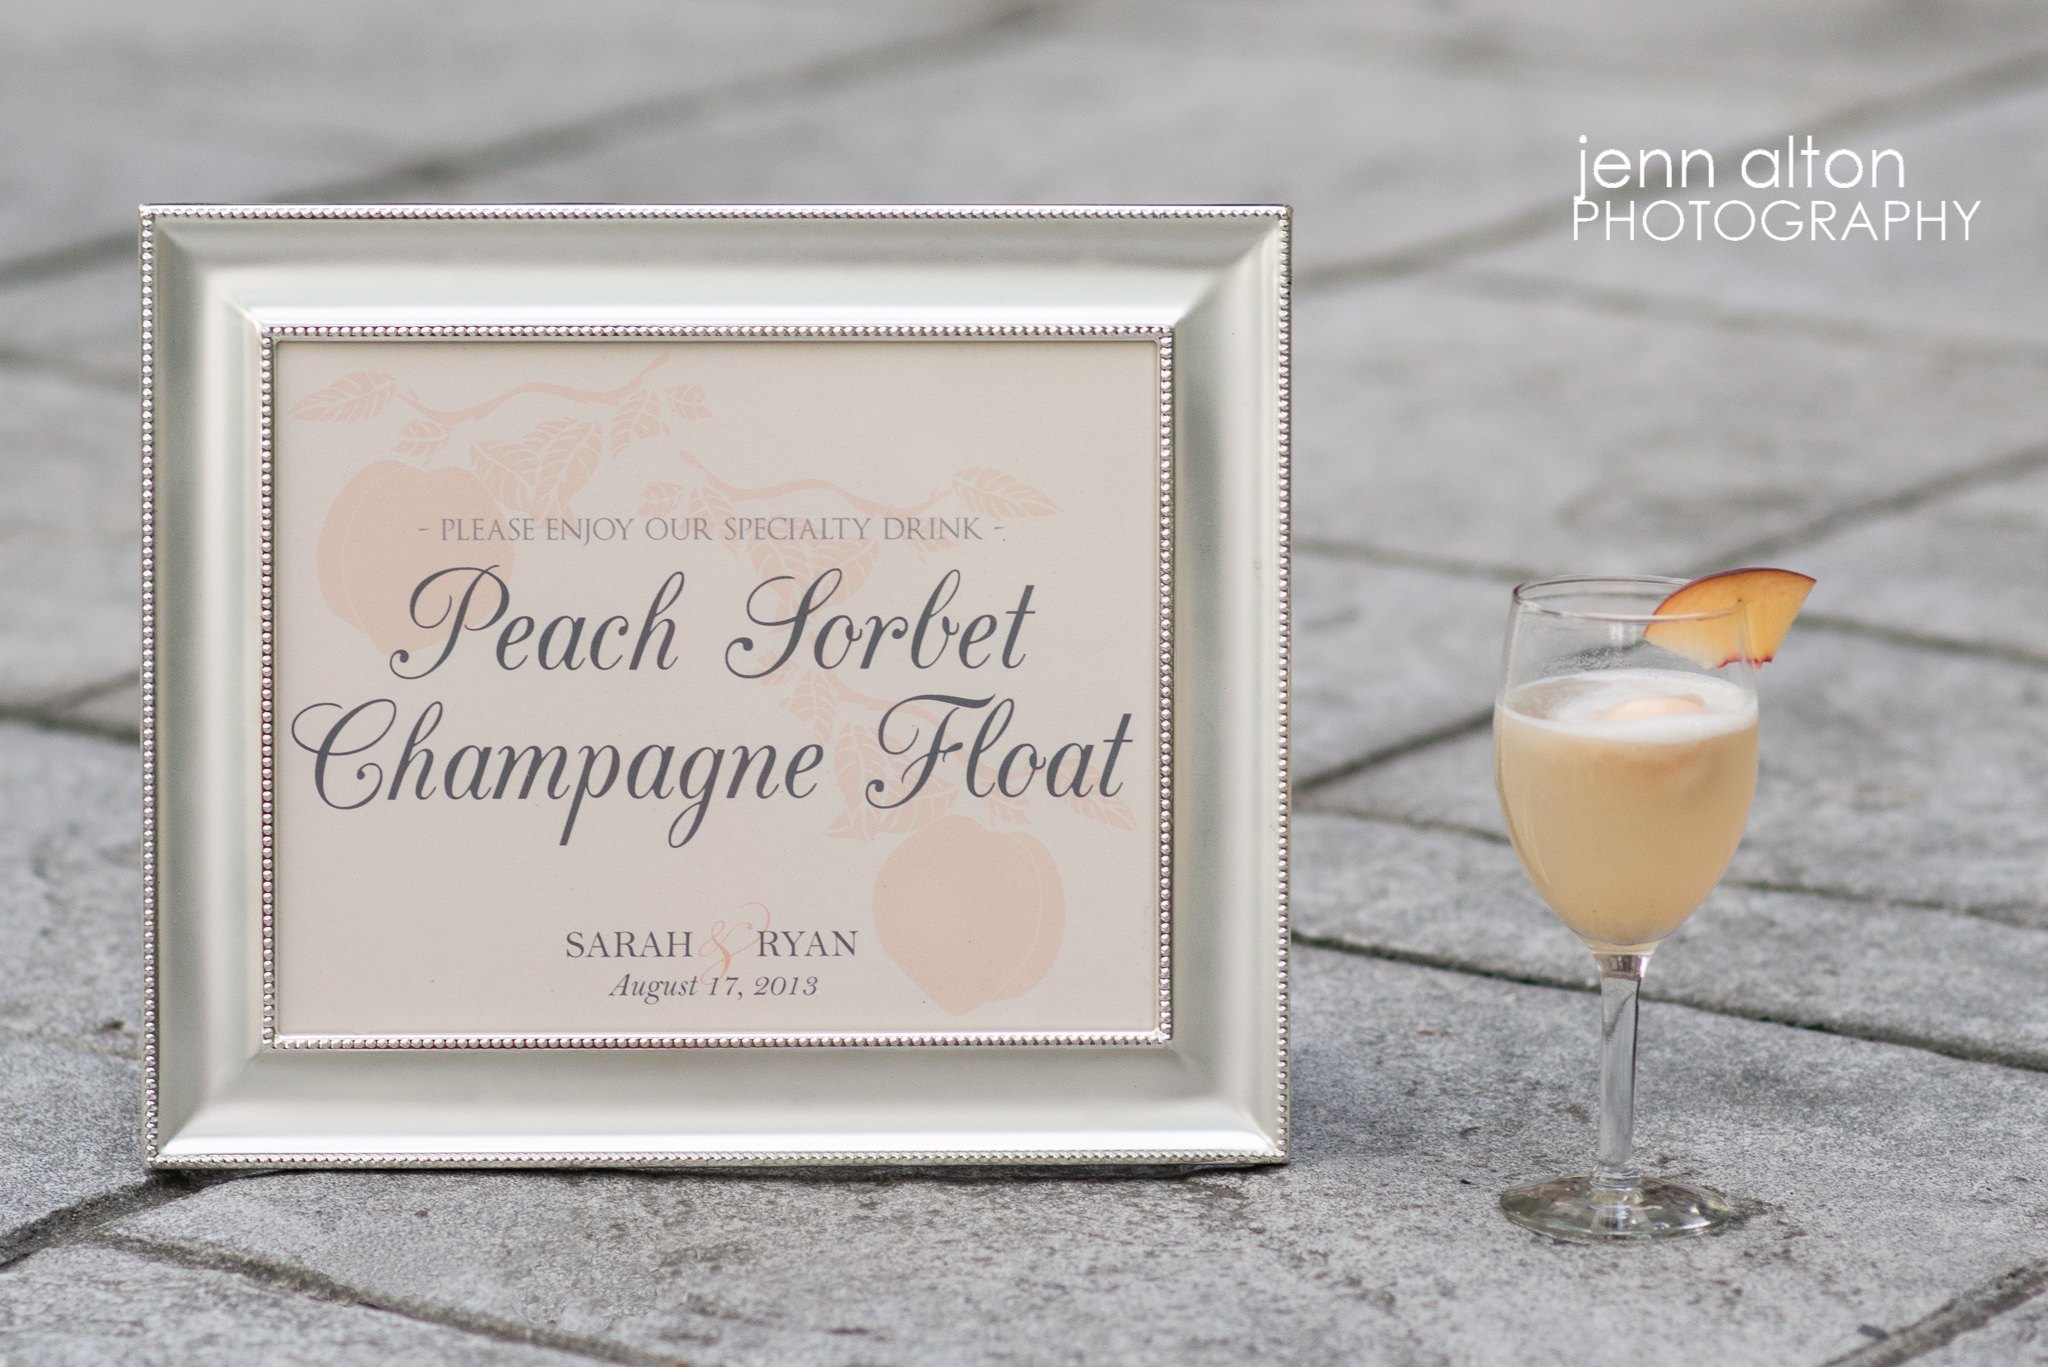 Bride and Groom's signature drink, Peach Sorbet Champagne Float